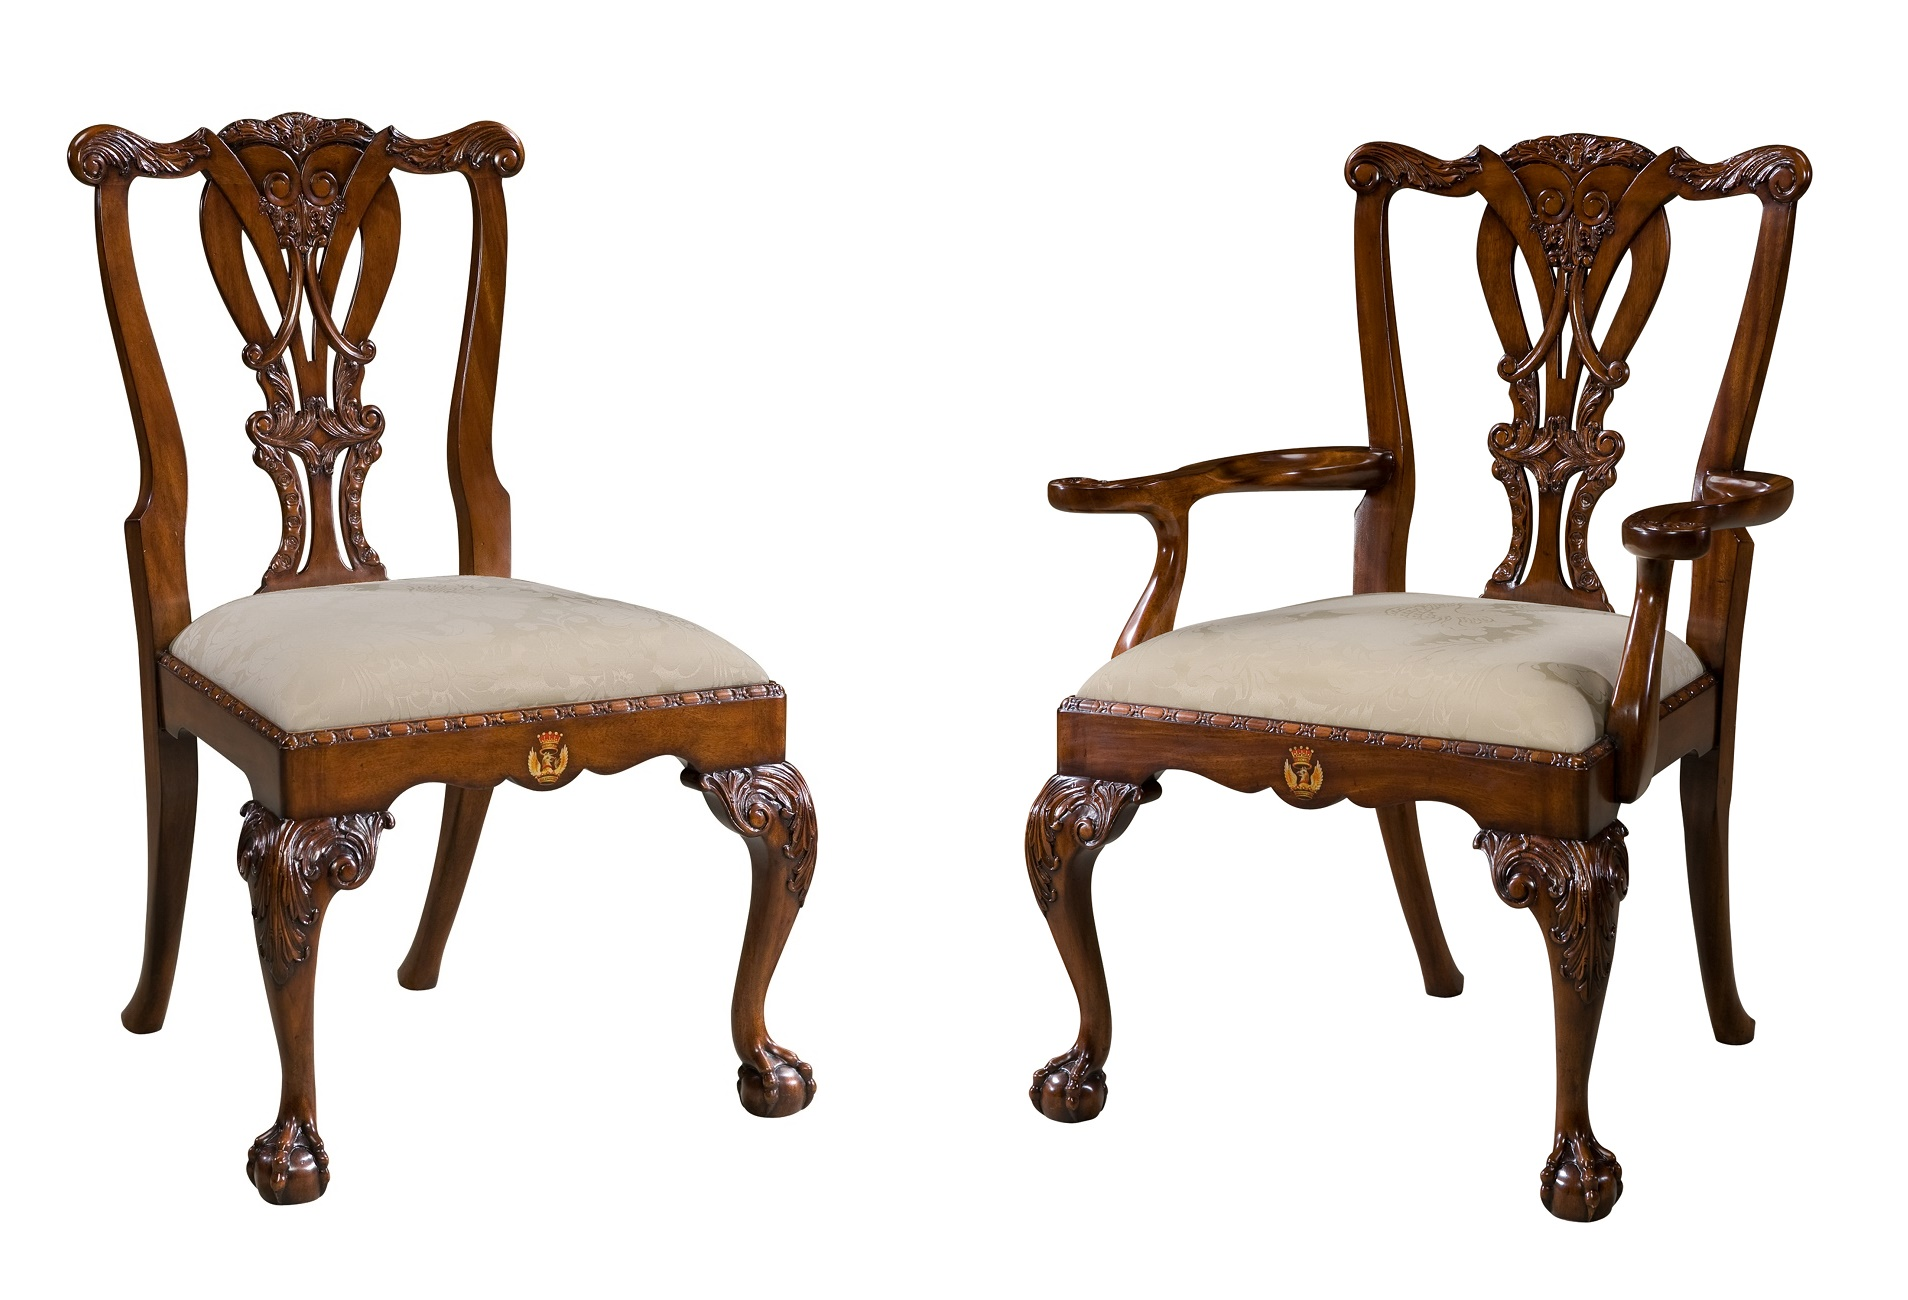 Crested Chair, Theodore Alexander Chairs Brooklyn, New York